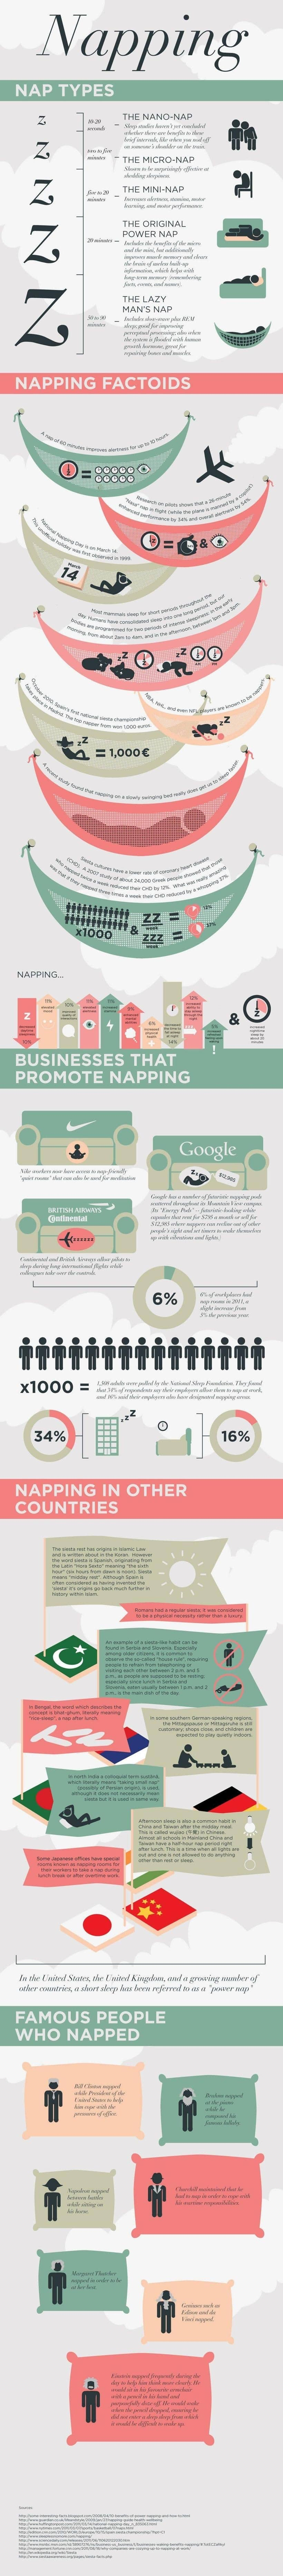 power-naps-and-effects-infographic